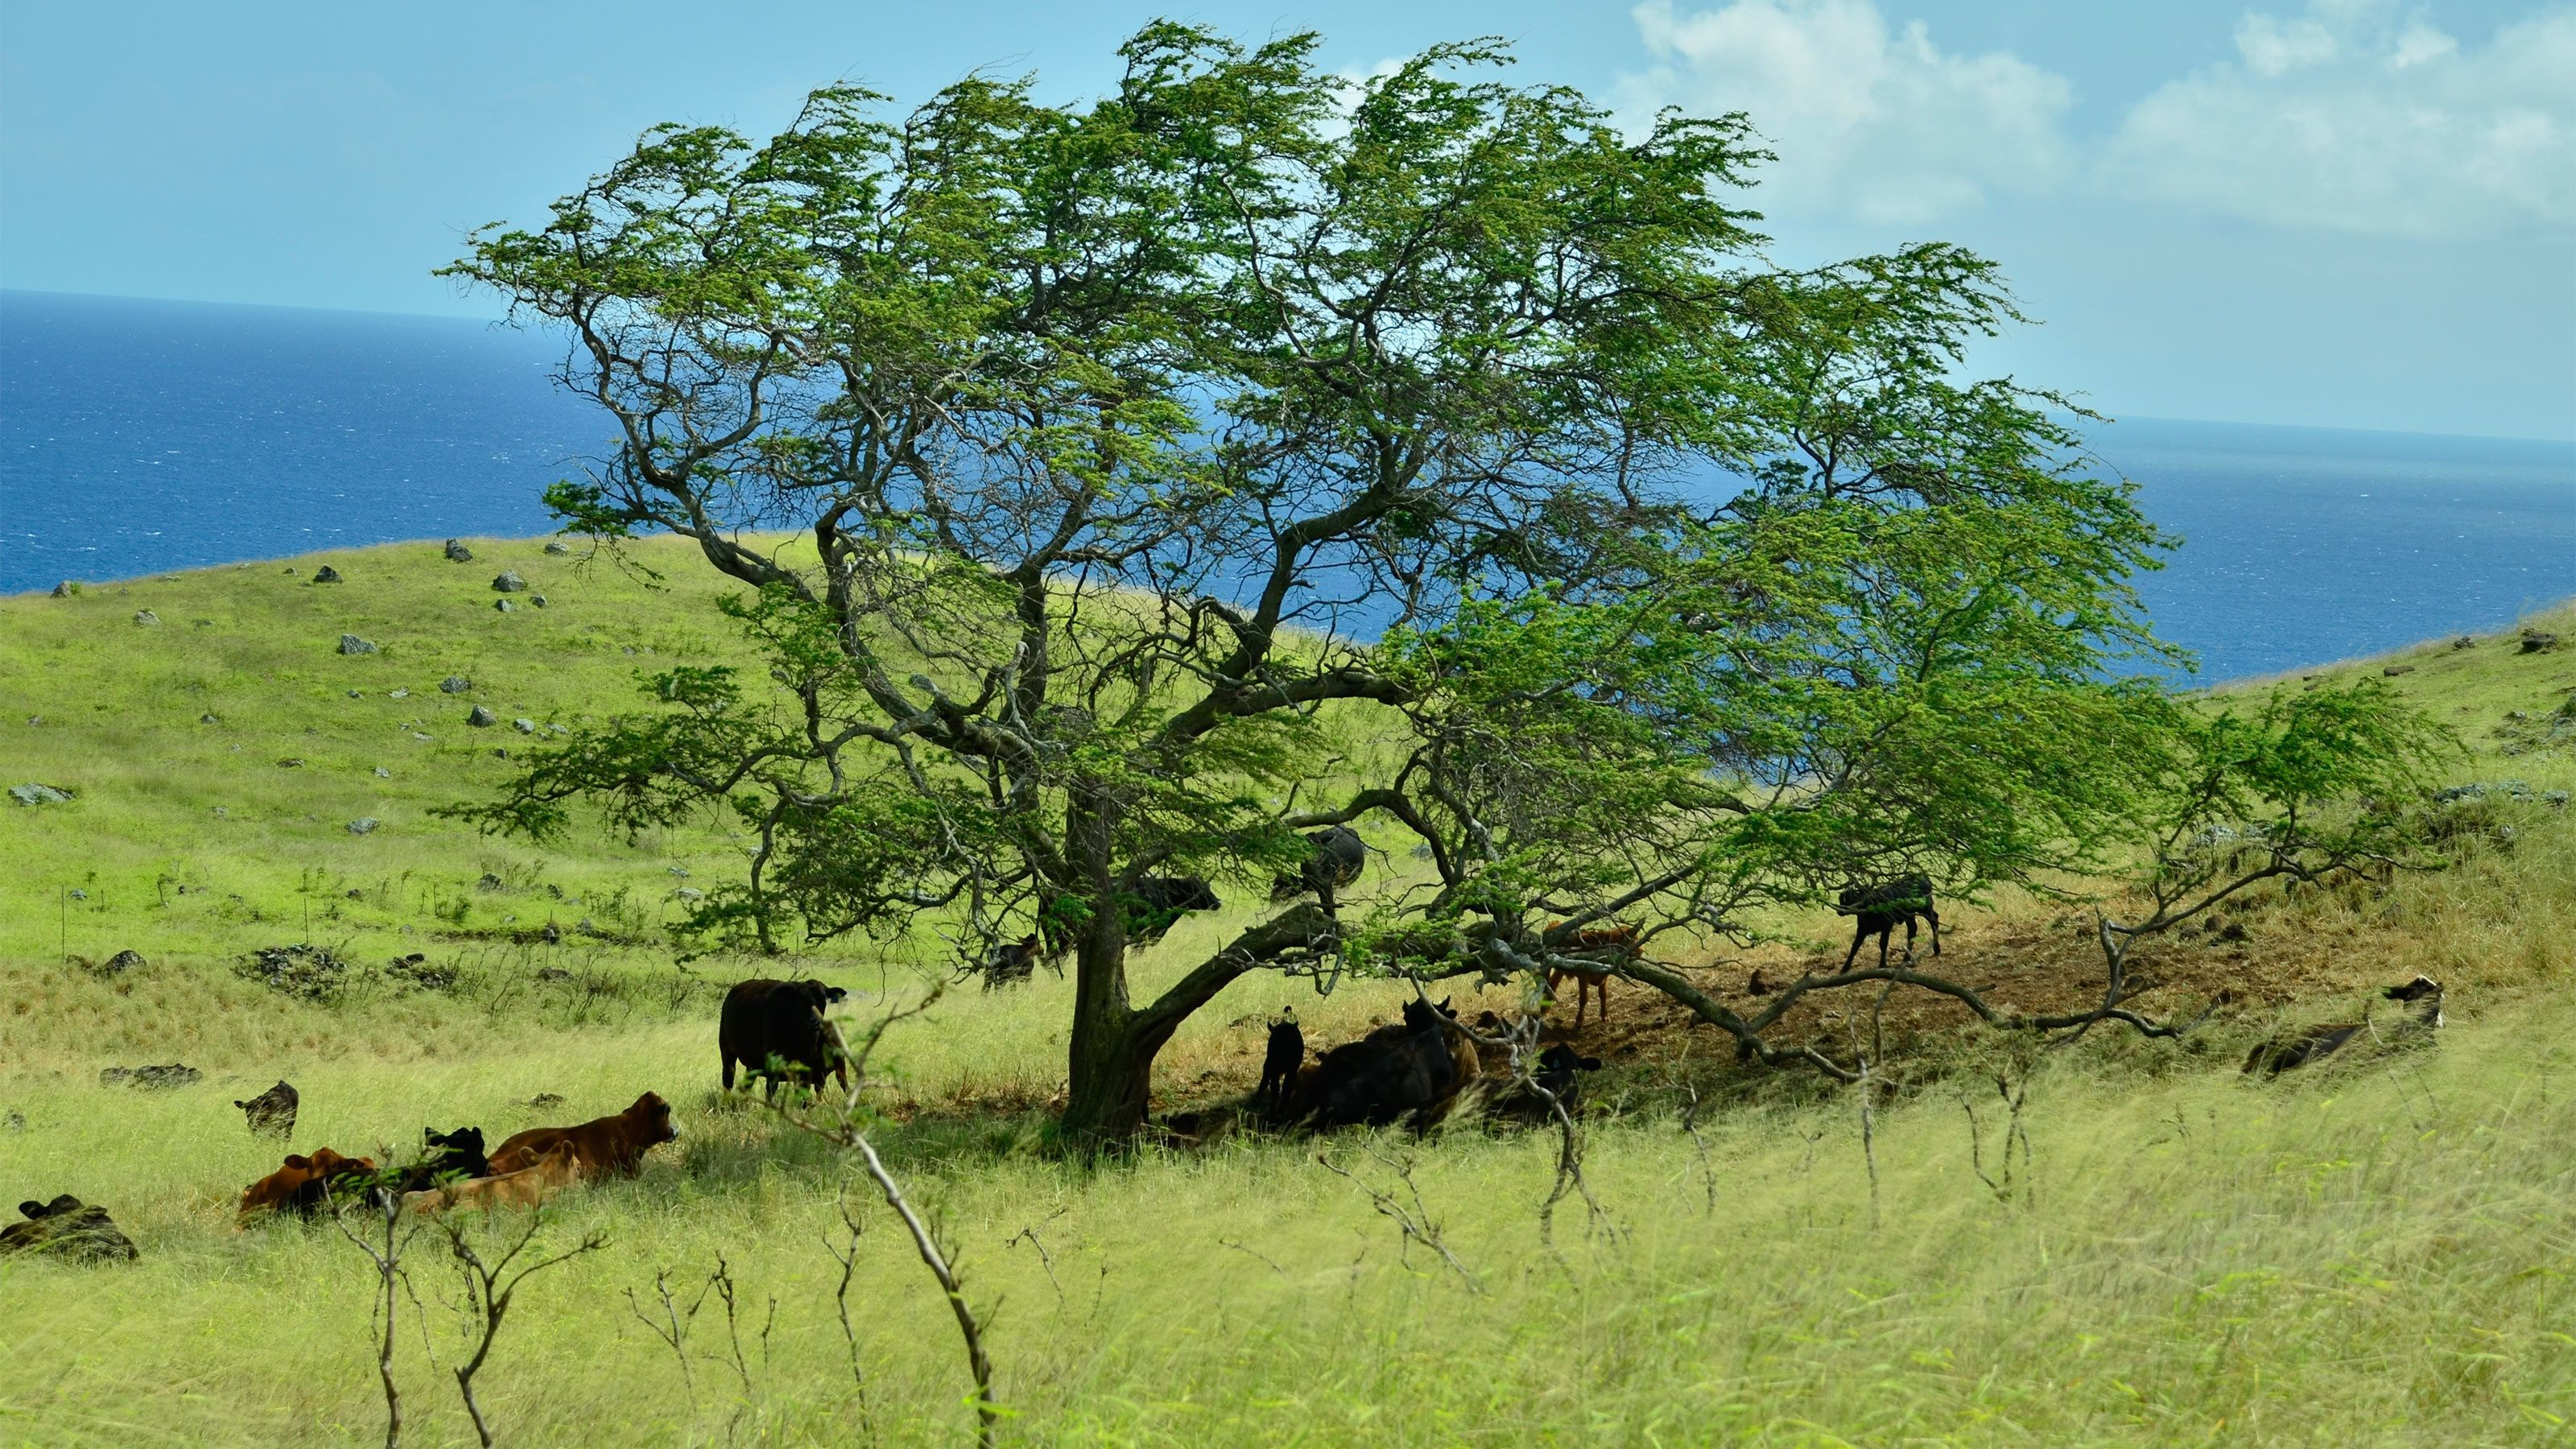 Field with livestock gathered under a tree in the hills along the coast in Hana